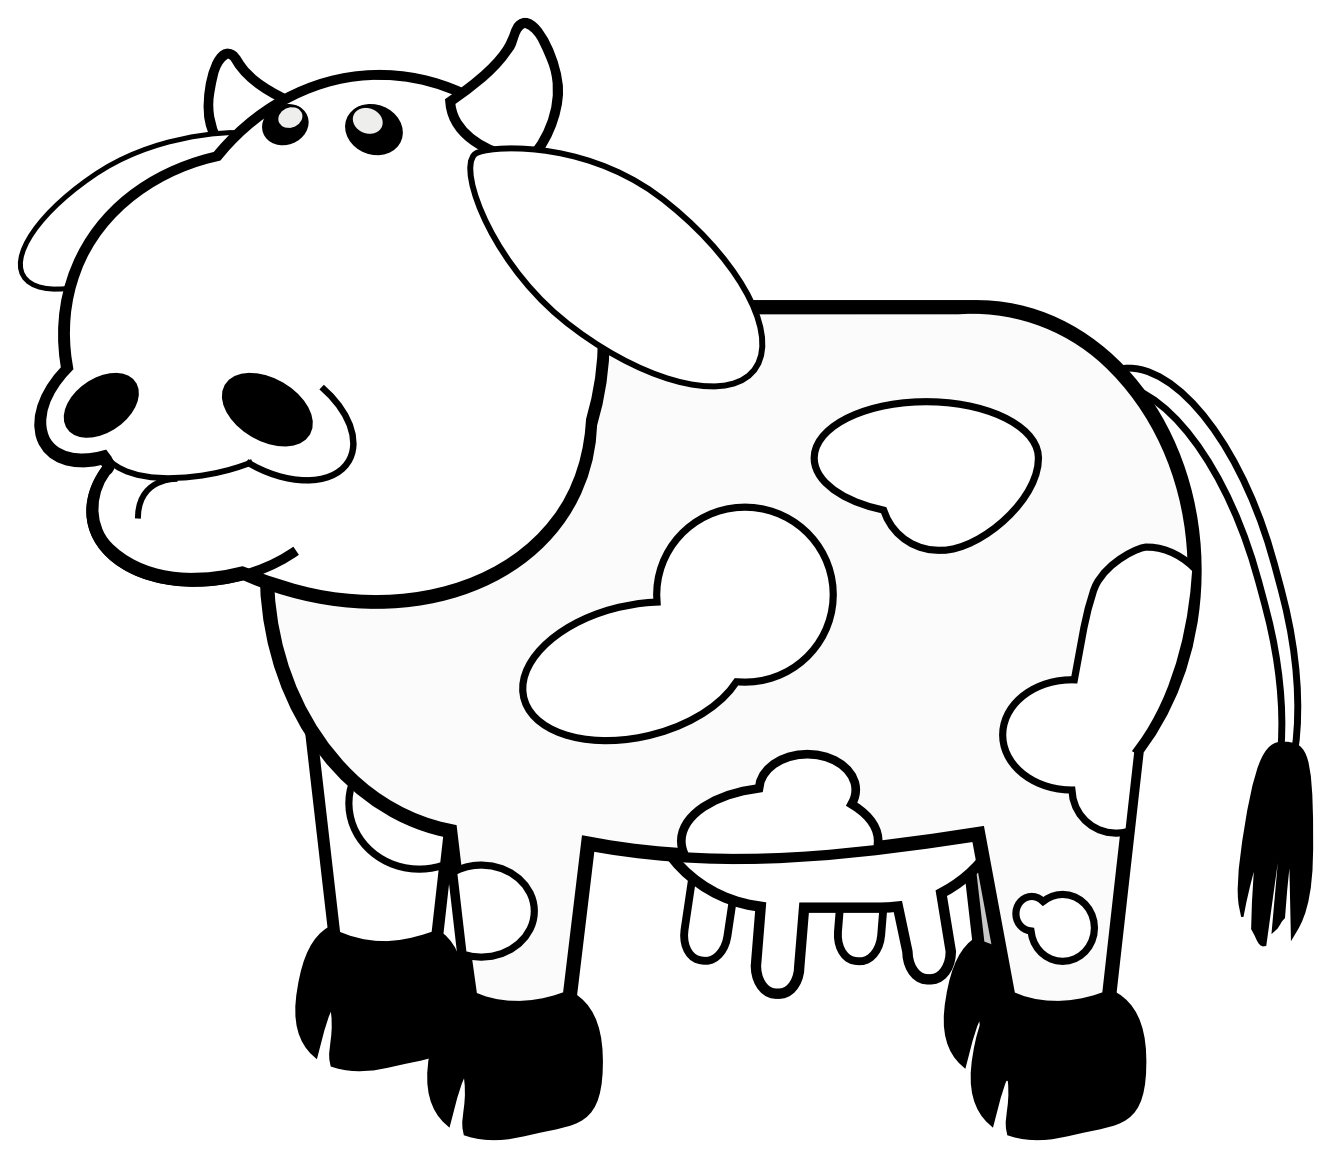 Cow Clipart Black And White Clipart Panda